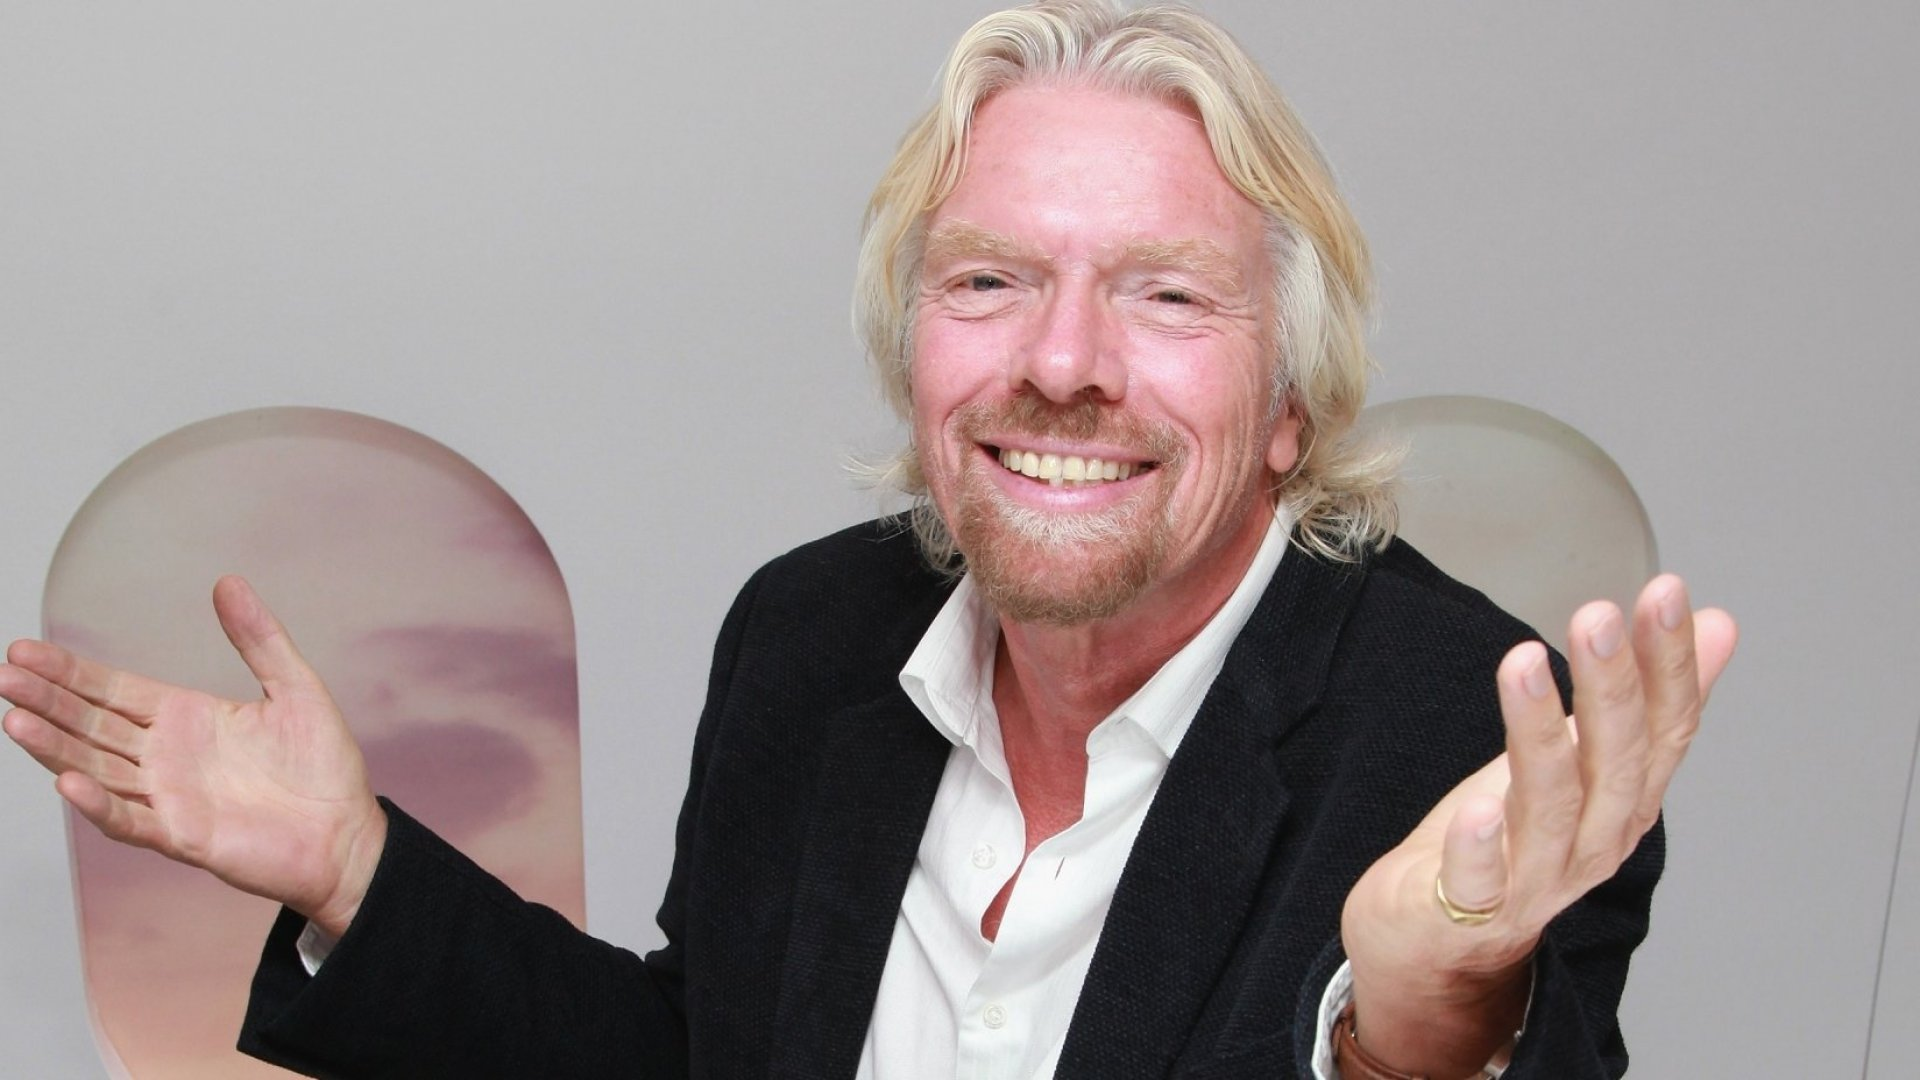 4 Famous Entrepreneurs With Great LinkedIn Profiles